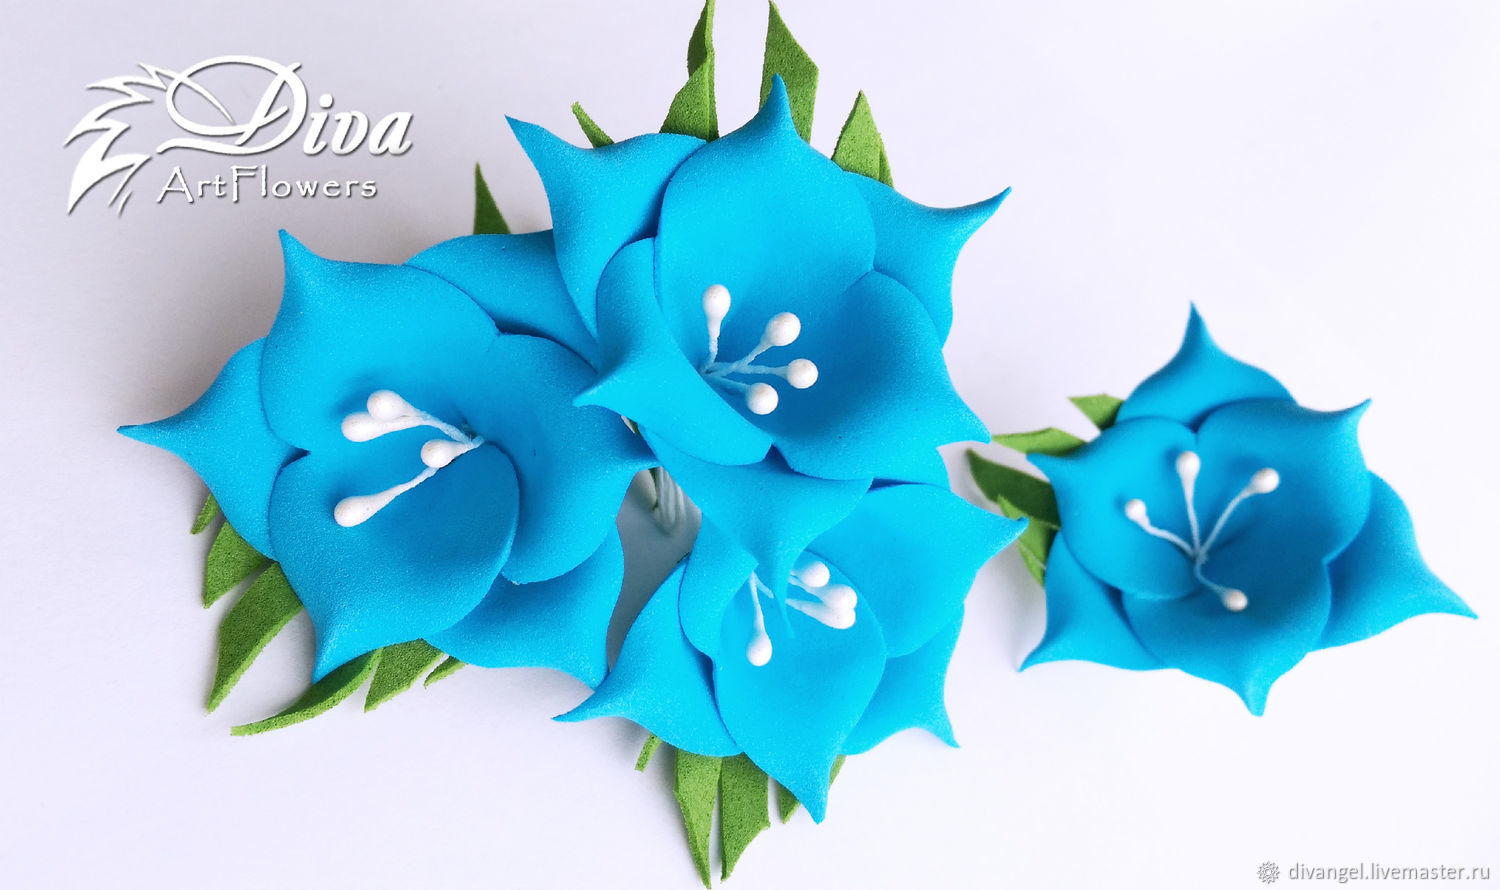 Forget Me Not Artificial Flowers From Tamarana With White Stamens